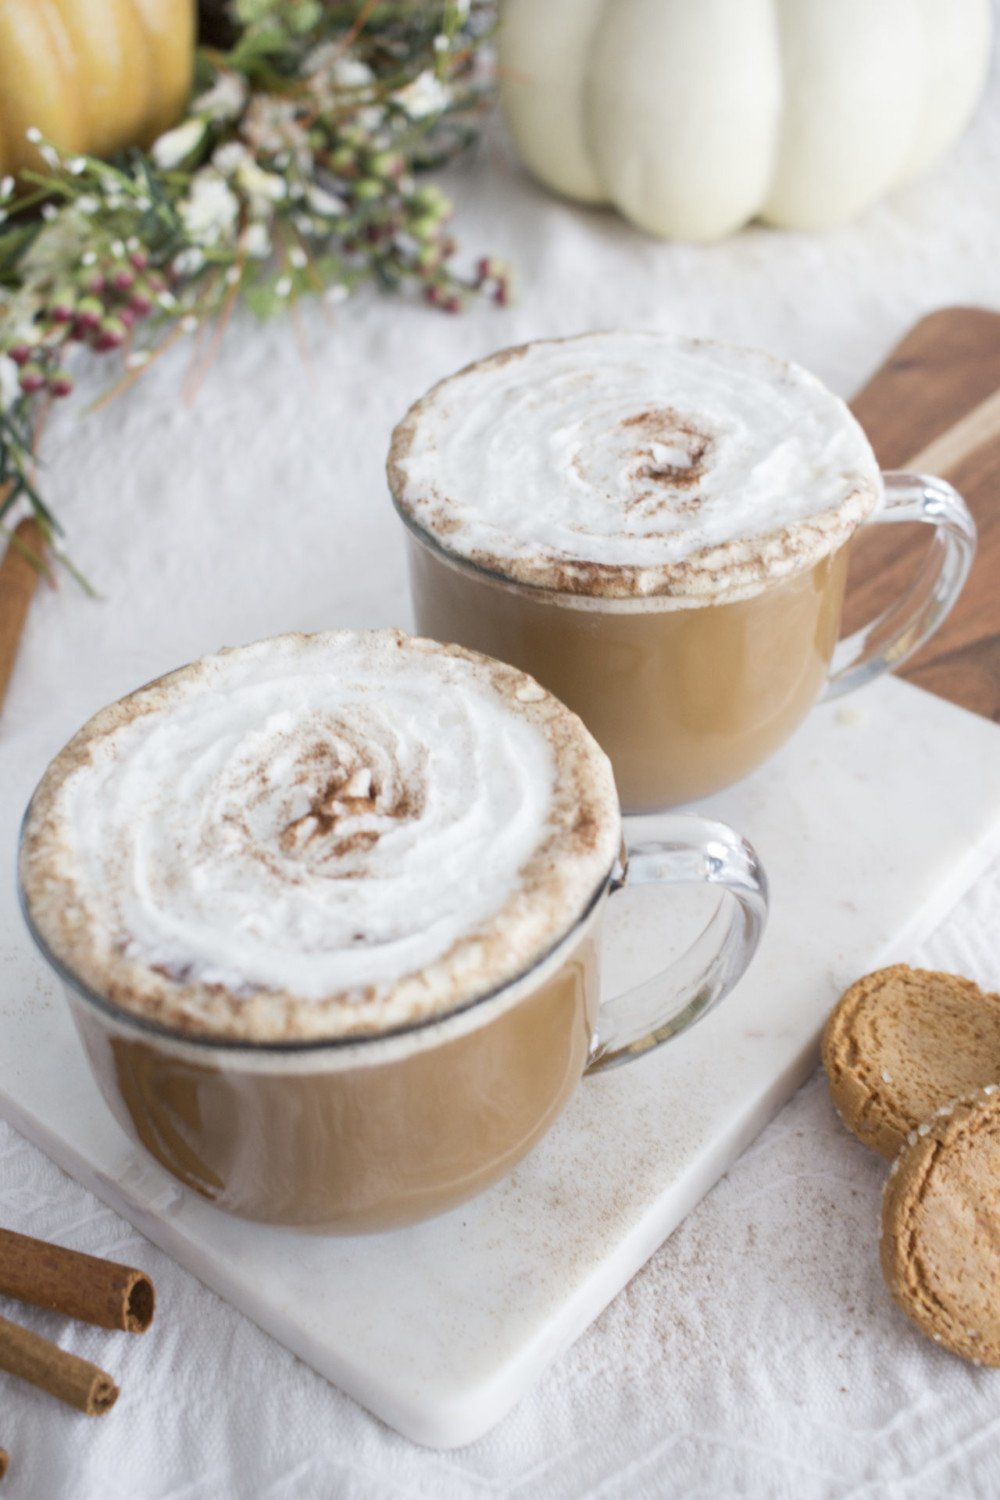 How to make a spiced vanilla latte at home